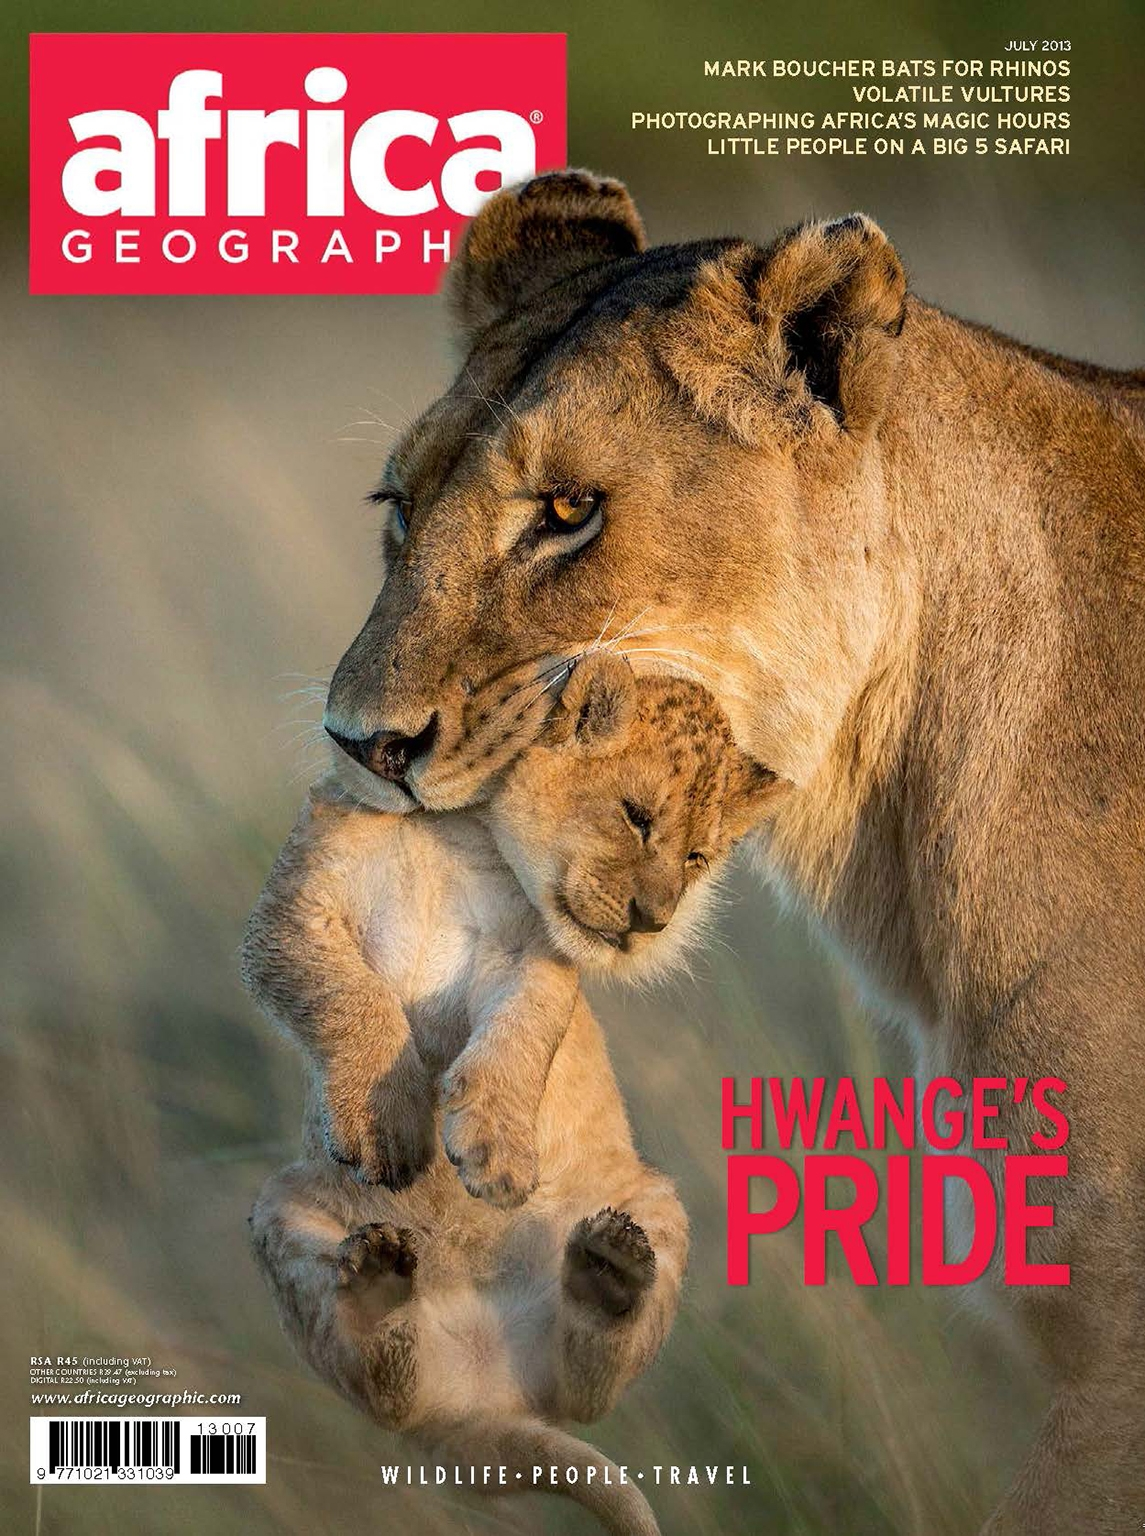 Africa Geographic Front cover July 2013